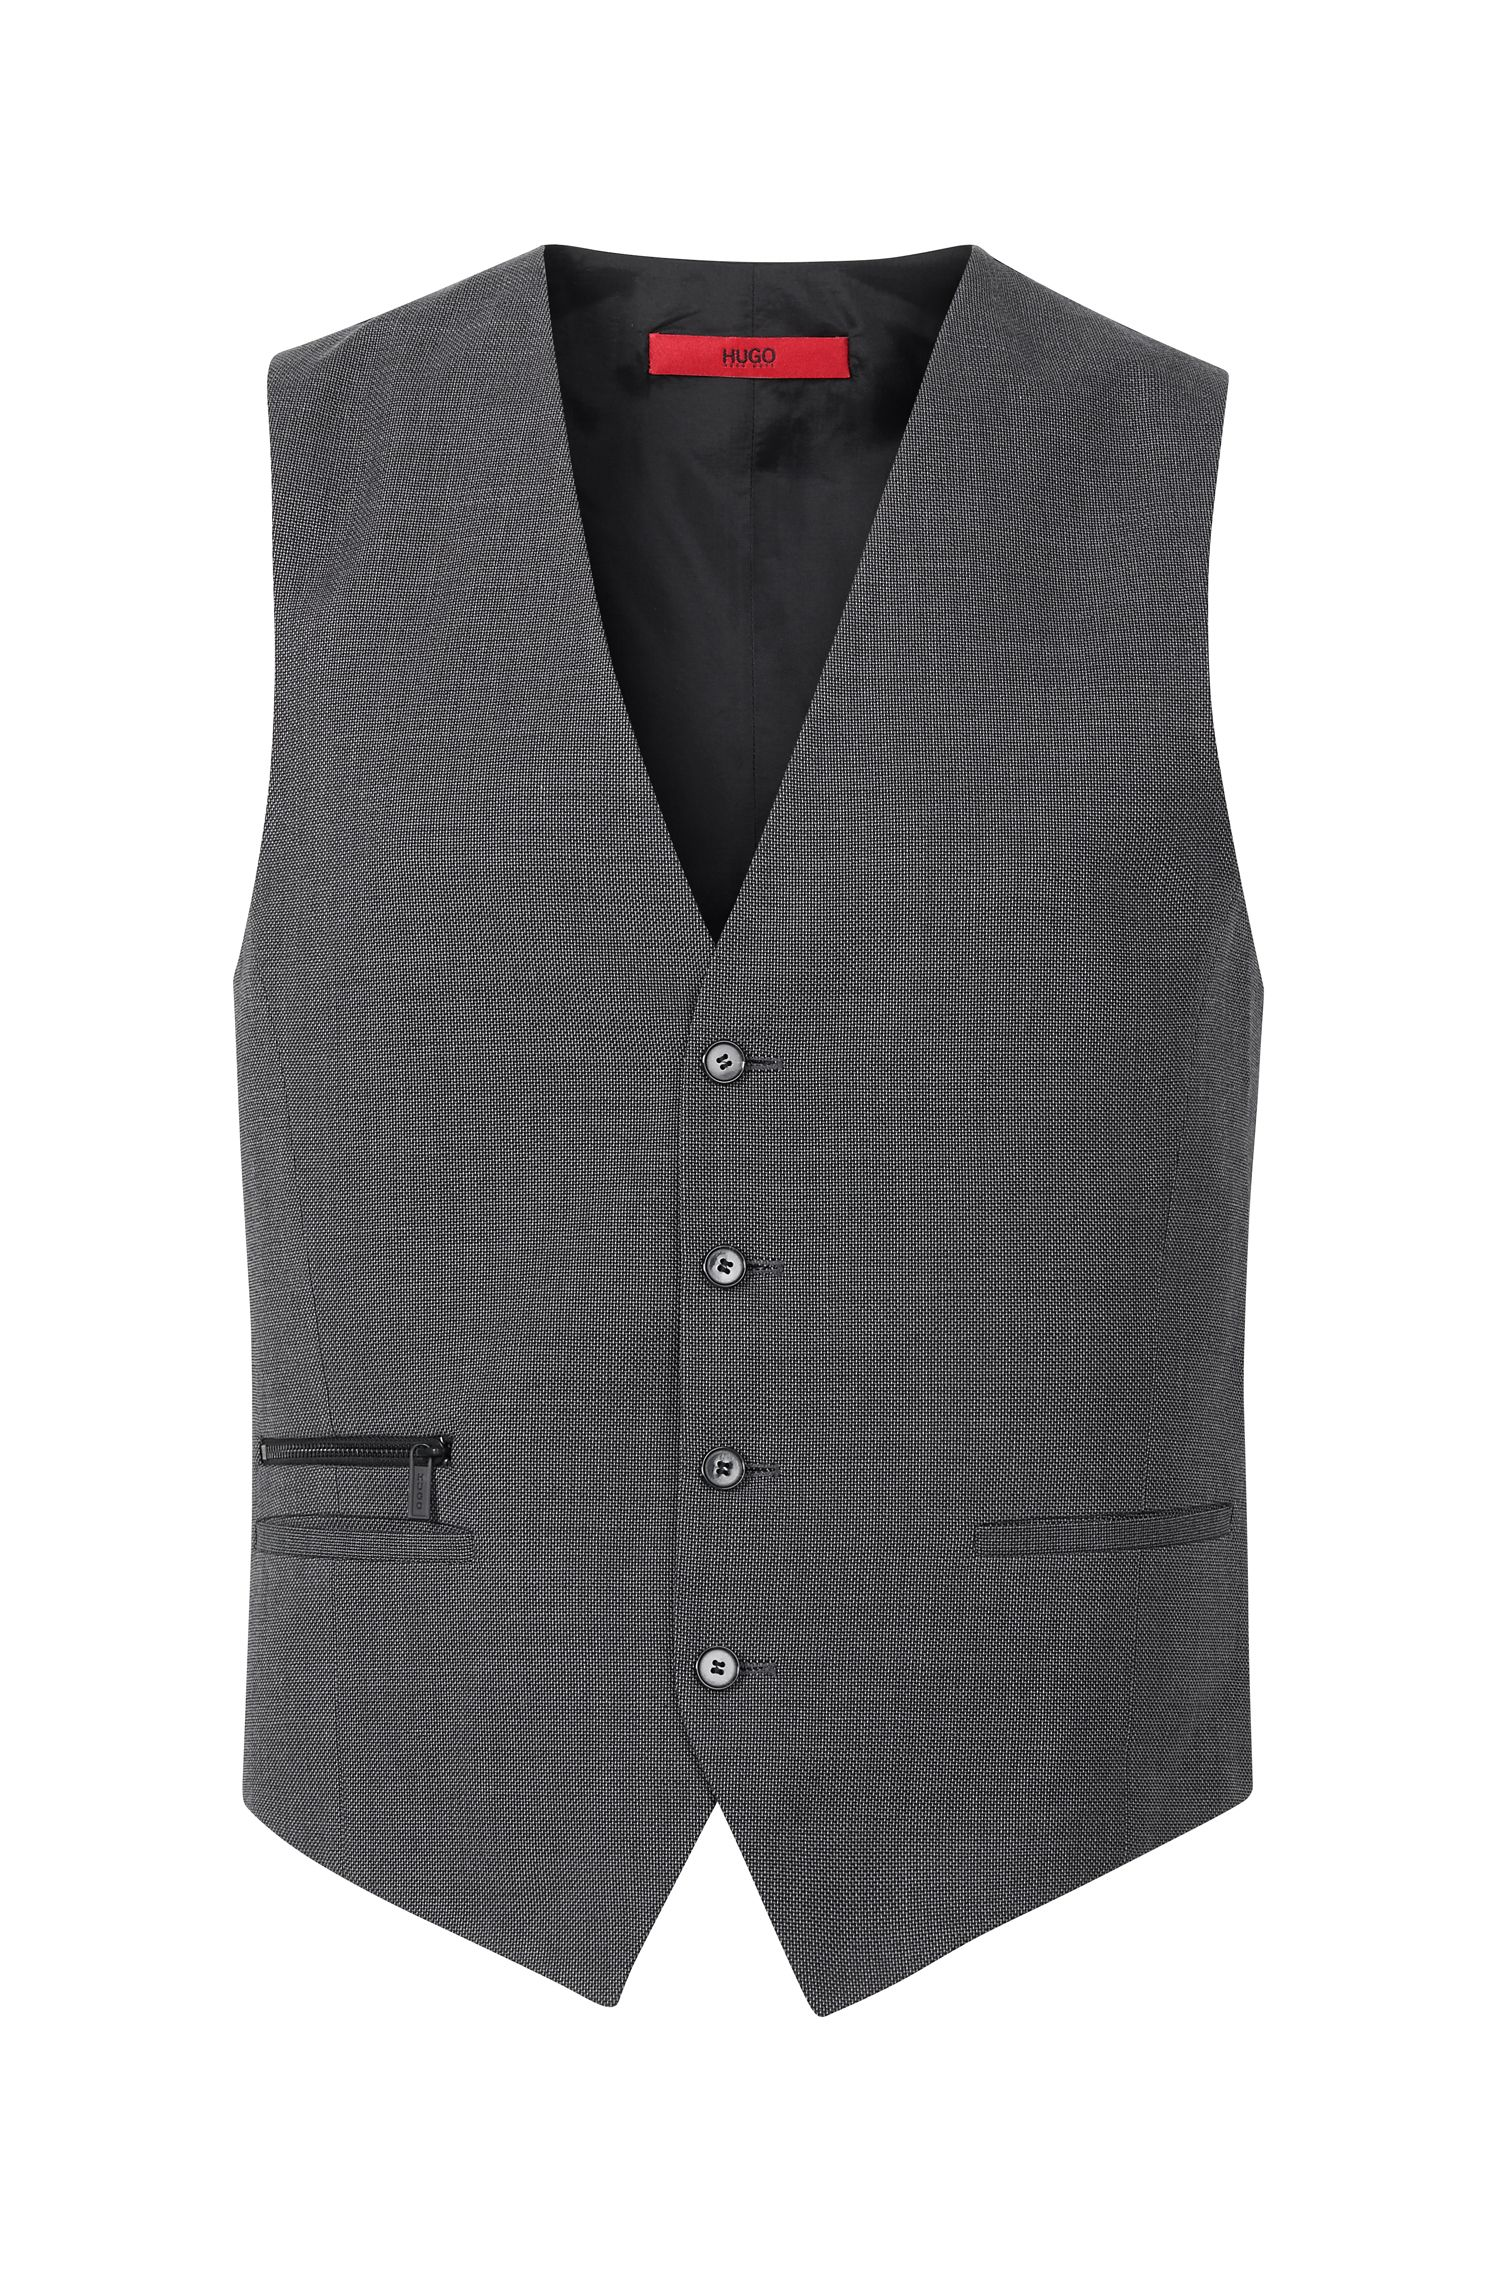 Virgin Wool Cotton Waistcoat, Slim Fit | Wadley